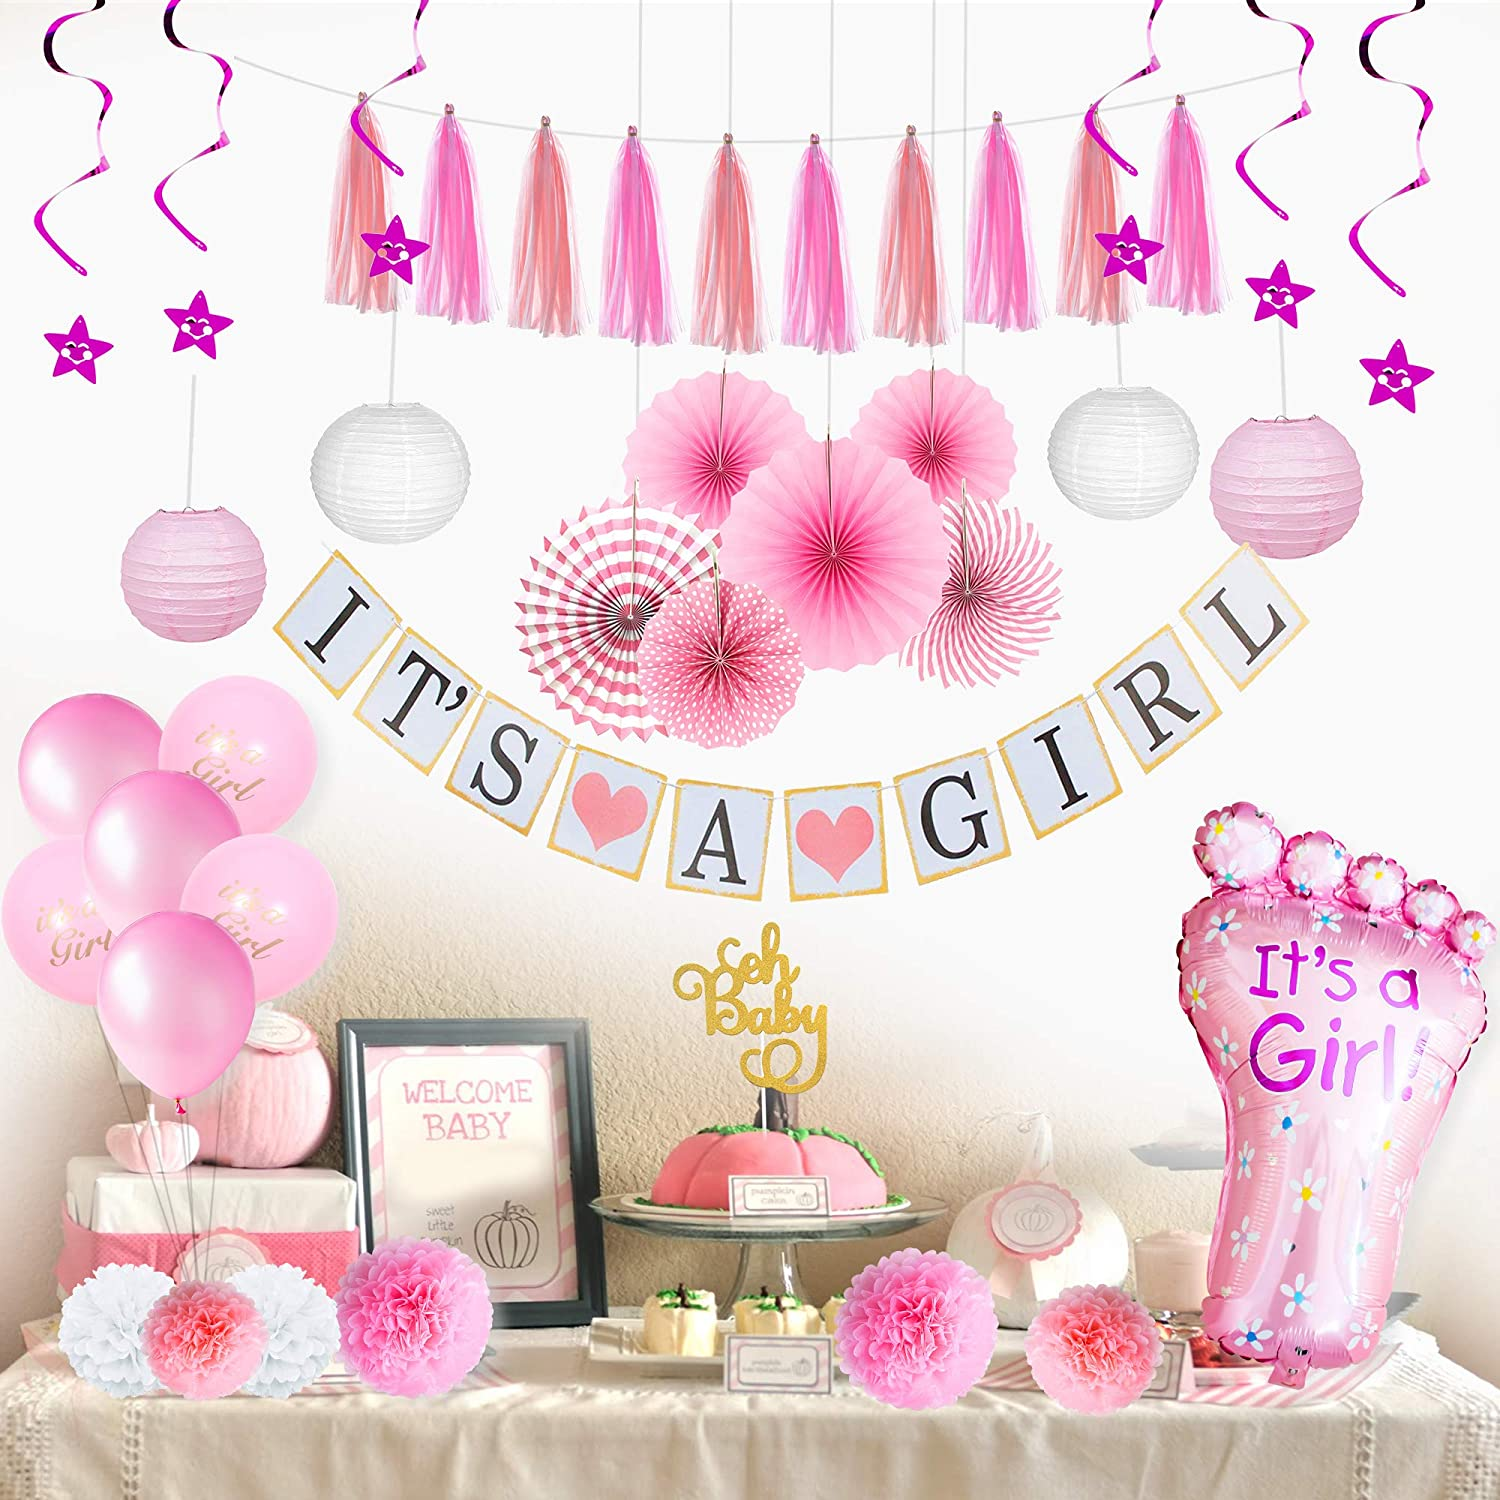 Baby Girl Baby Shower Decorations for Girl I Baby Shower for Girl Baby  Shower Decorations I Baby Shower Girl Decorations I Its a Girl Baby Shower